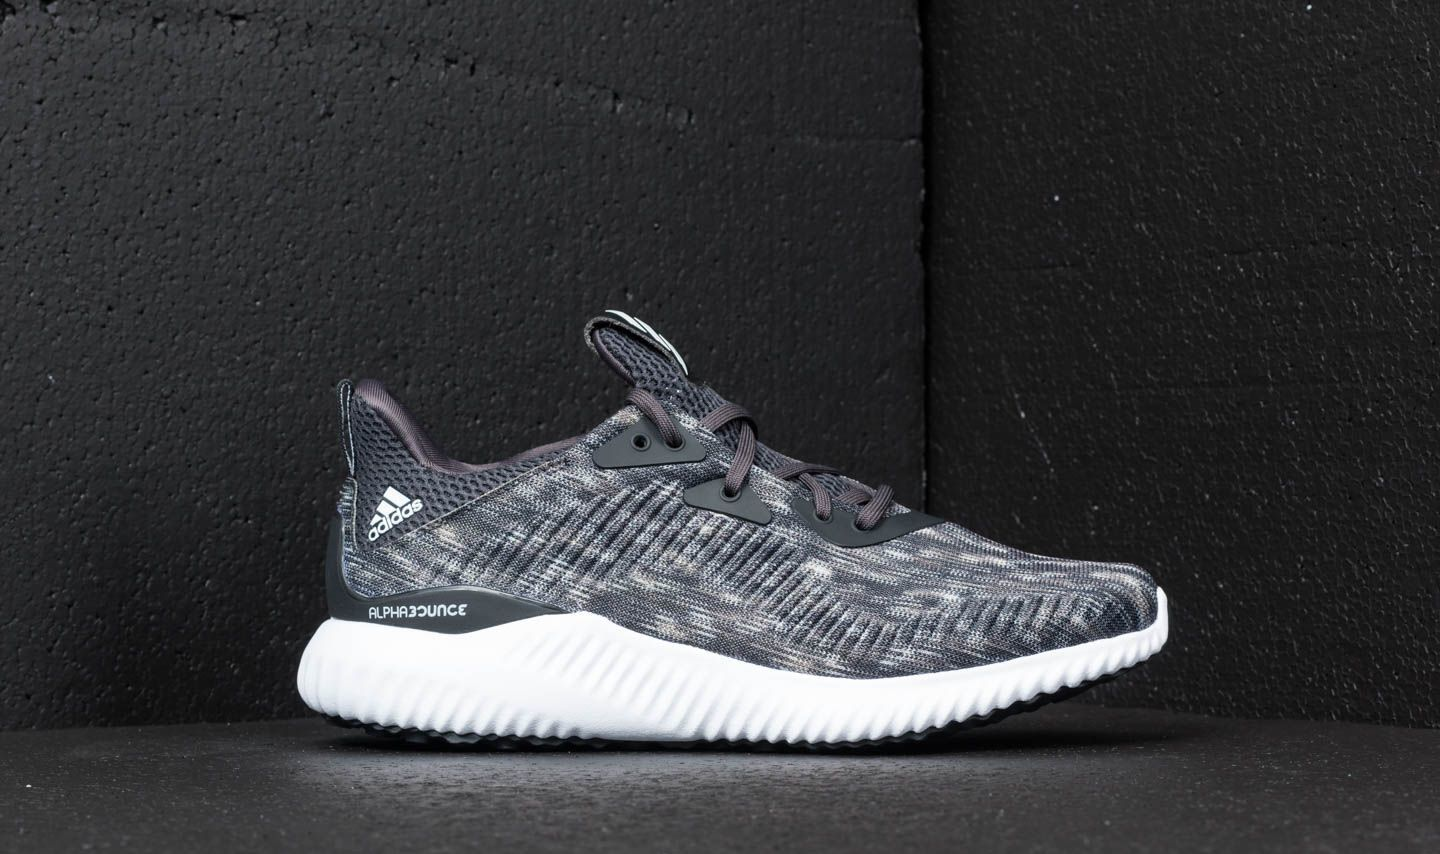 reputable site 5a941 eb500 adidas Alphabounce Space Dye Grey Core Black Ftw White Carbon at a great